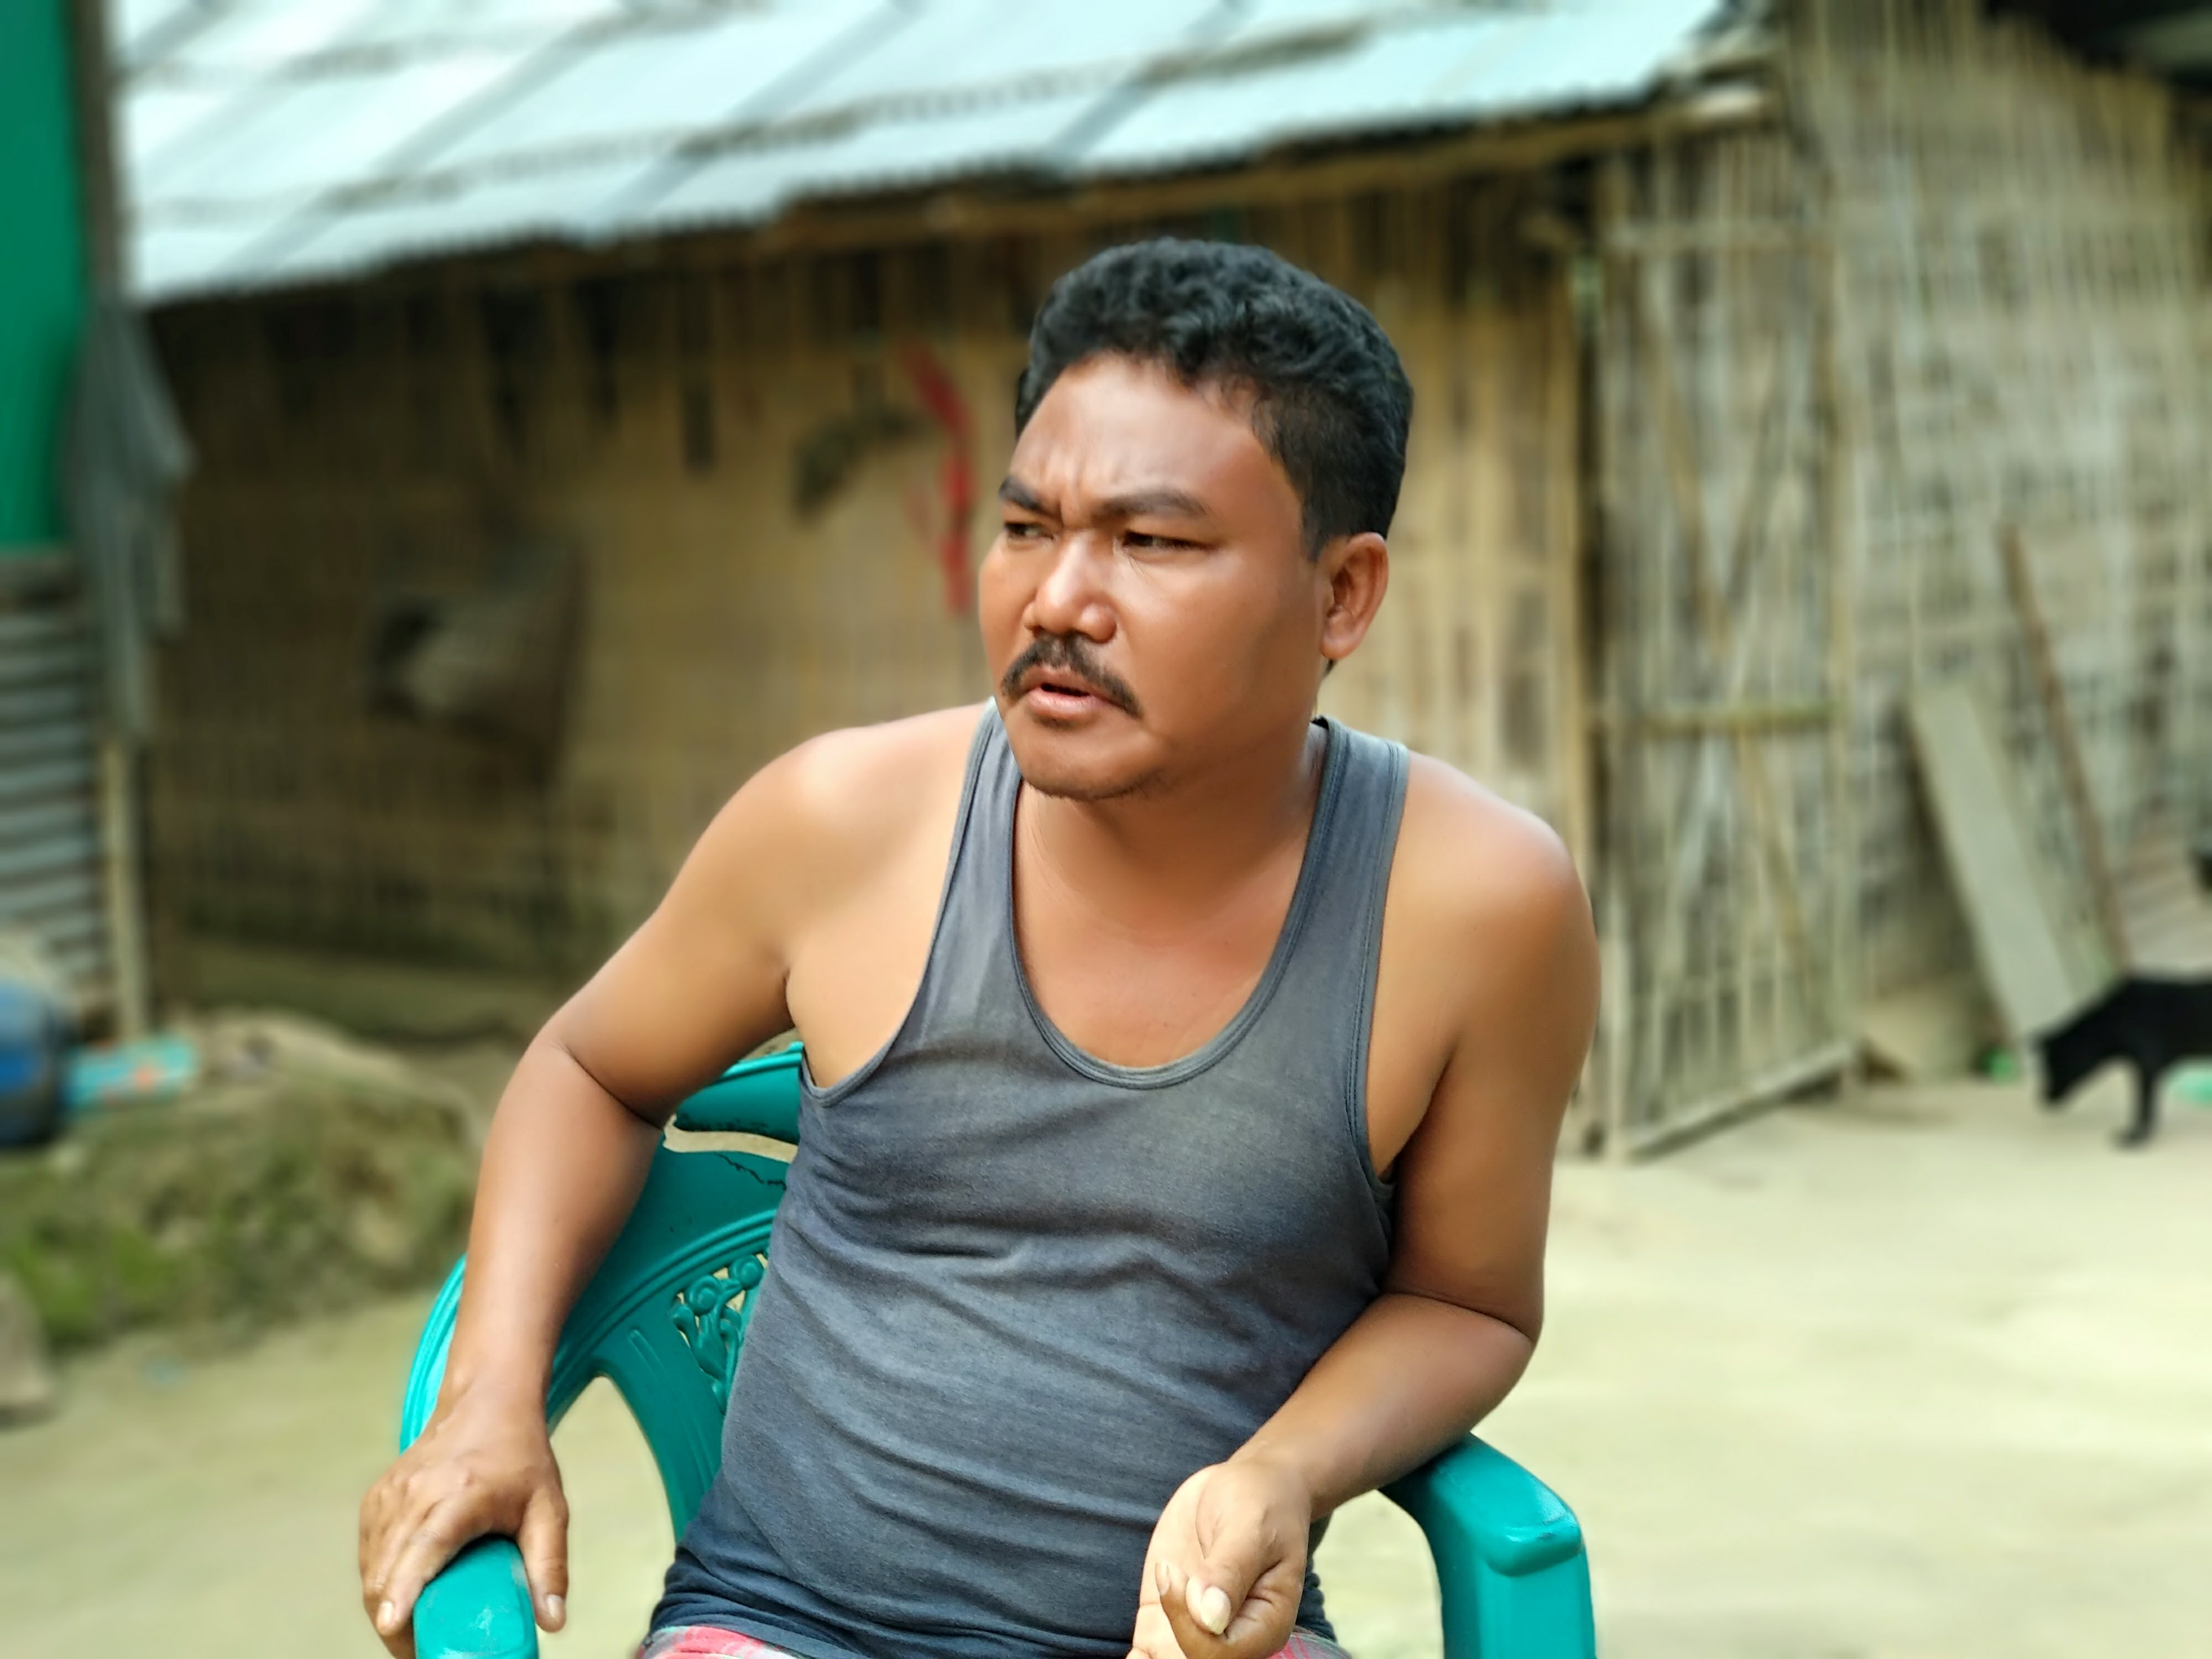 Niranjan Kalai, a former insurgent who gave up arms in 1992, claims he received no benefits from the state government's rubber-based rehabilitation  program